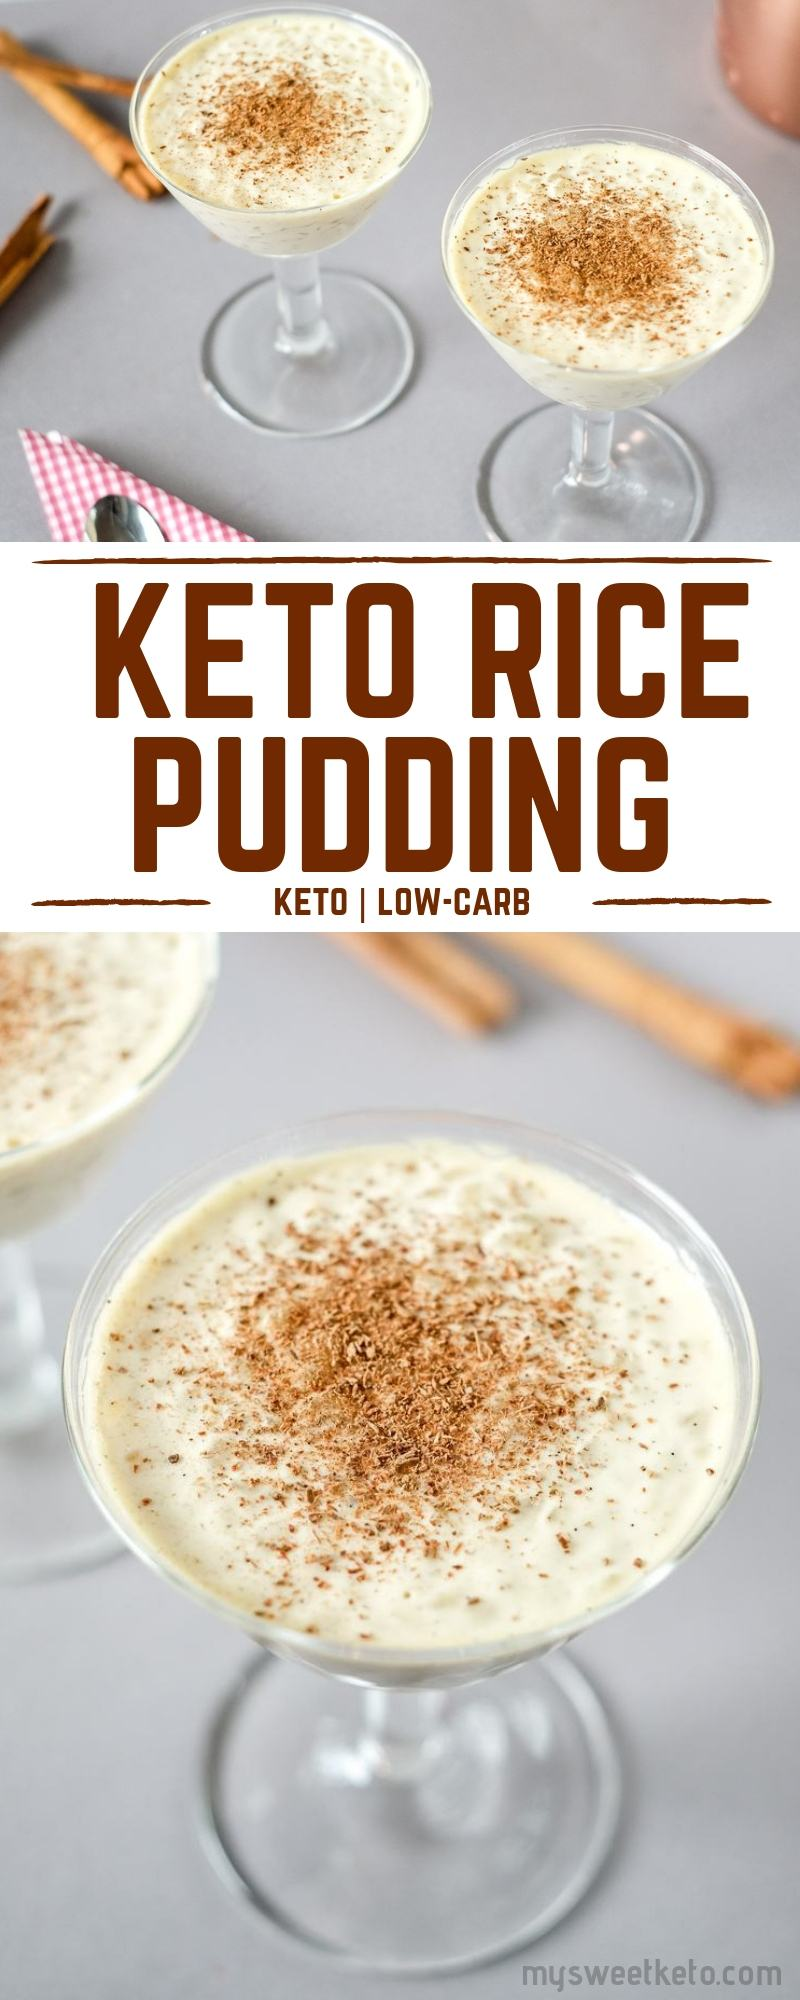 This keto low-carb rice pudding recipe is quick and easy. The rice pudding is creamy, not too sweet, and prepared in 25 minutes.